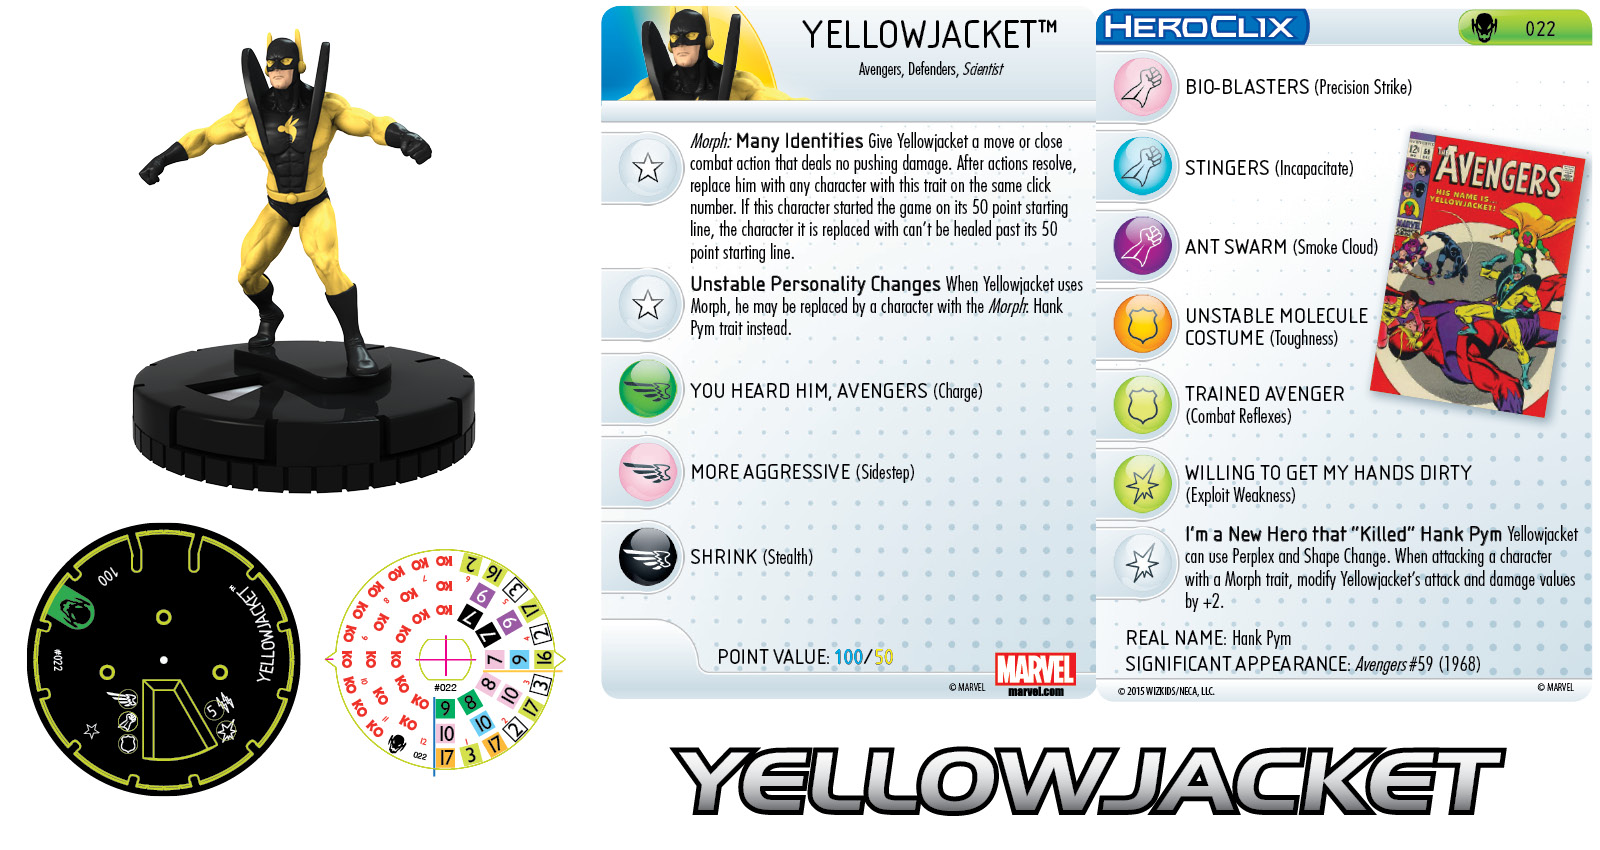 Marvel HeroClix: Age of Ultron- Yellowjacket